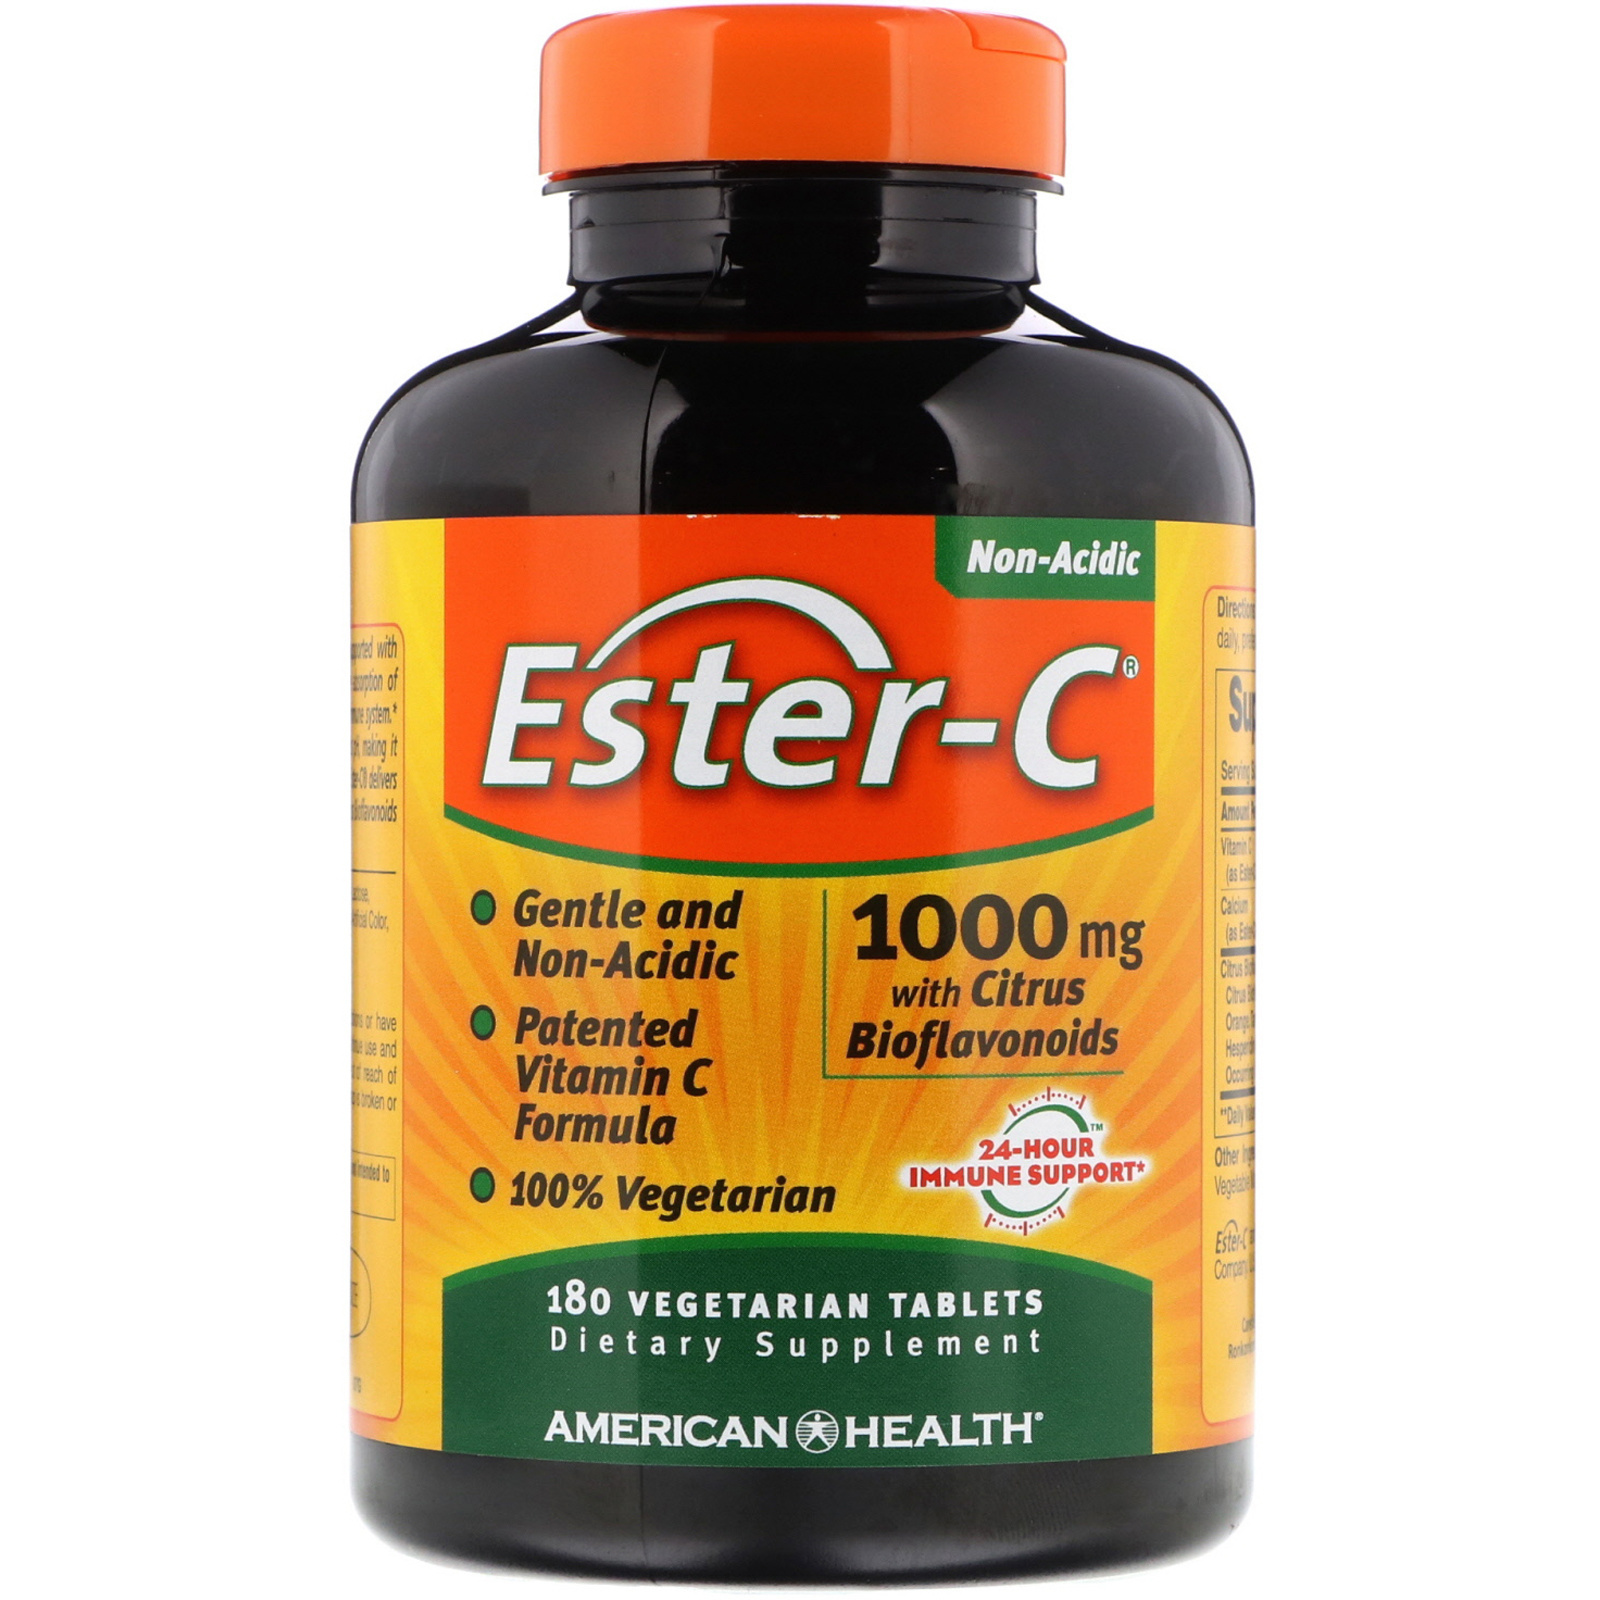 American Health Ester-c With Citrus Bioflavonoids 1000 Mg, 180 Tablets, 5-packs